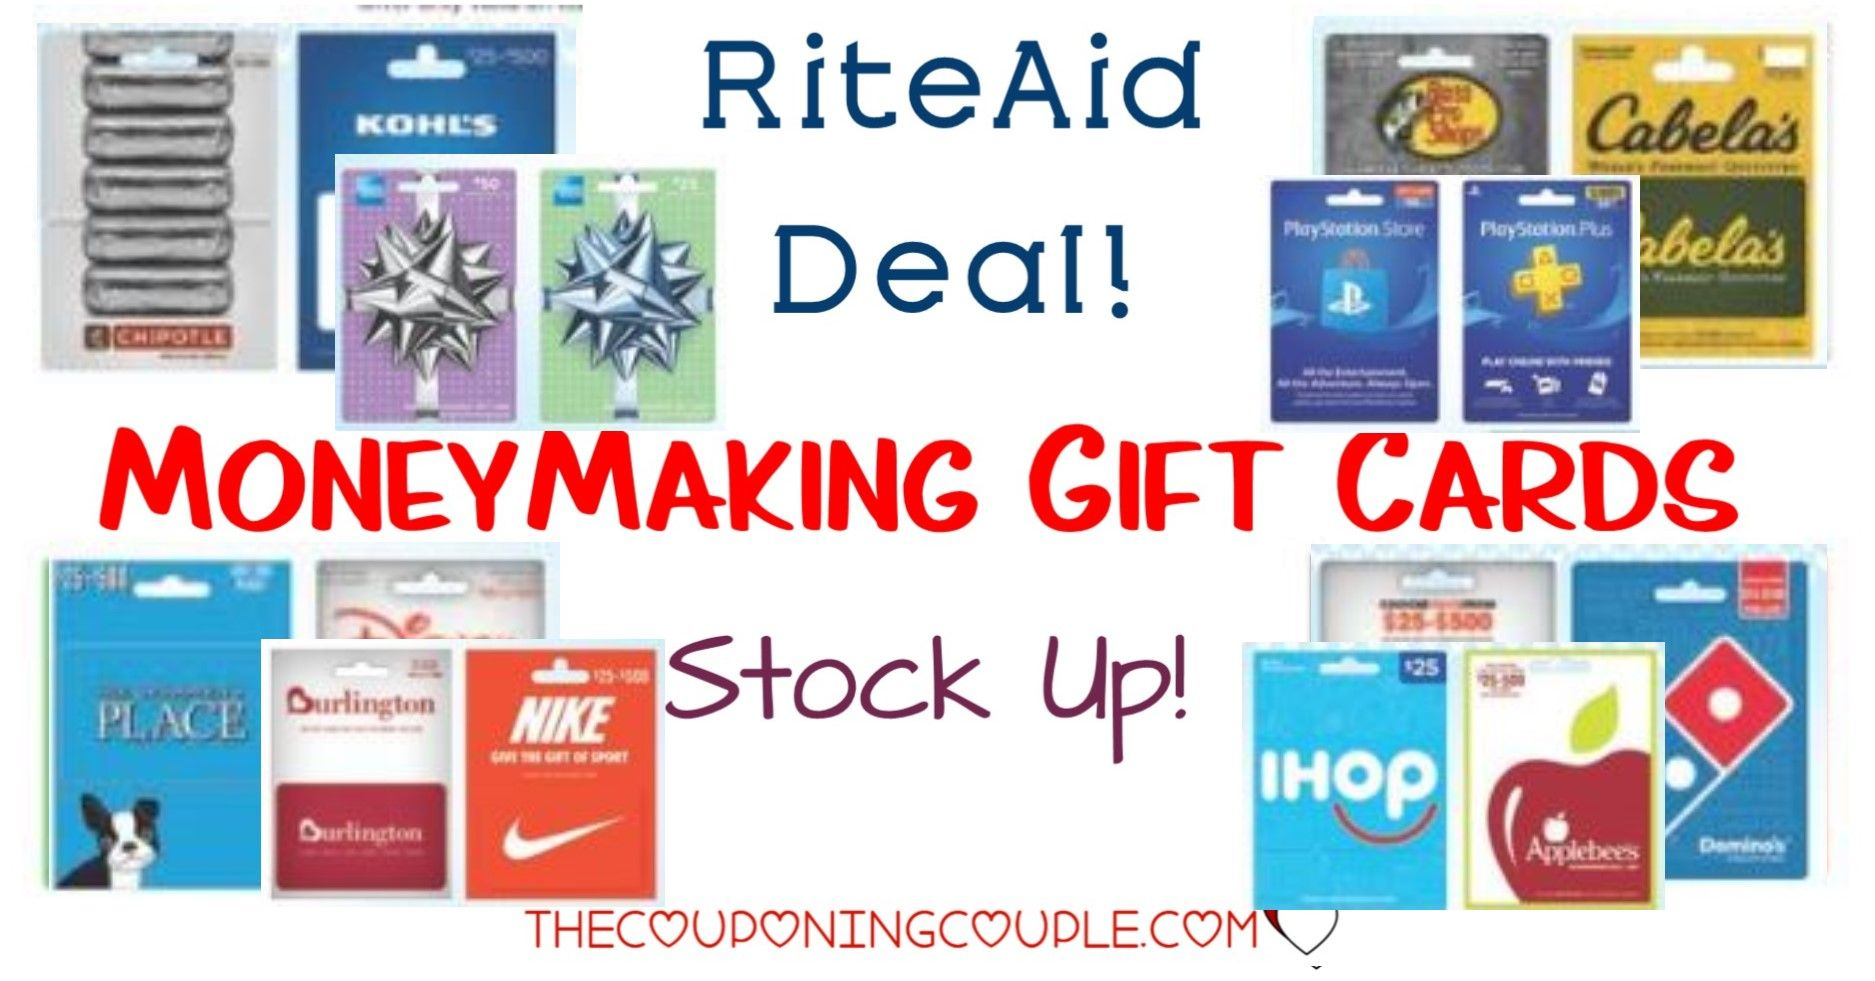 Moneymaking gift cards at rite aid time to stock up